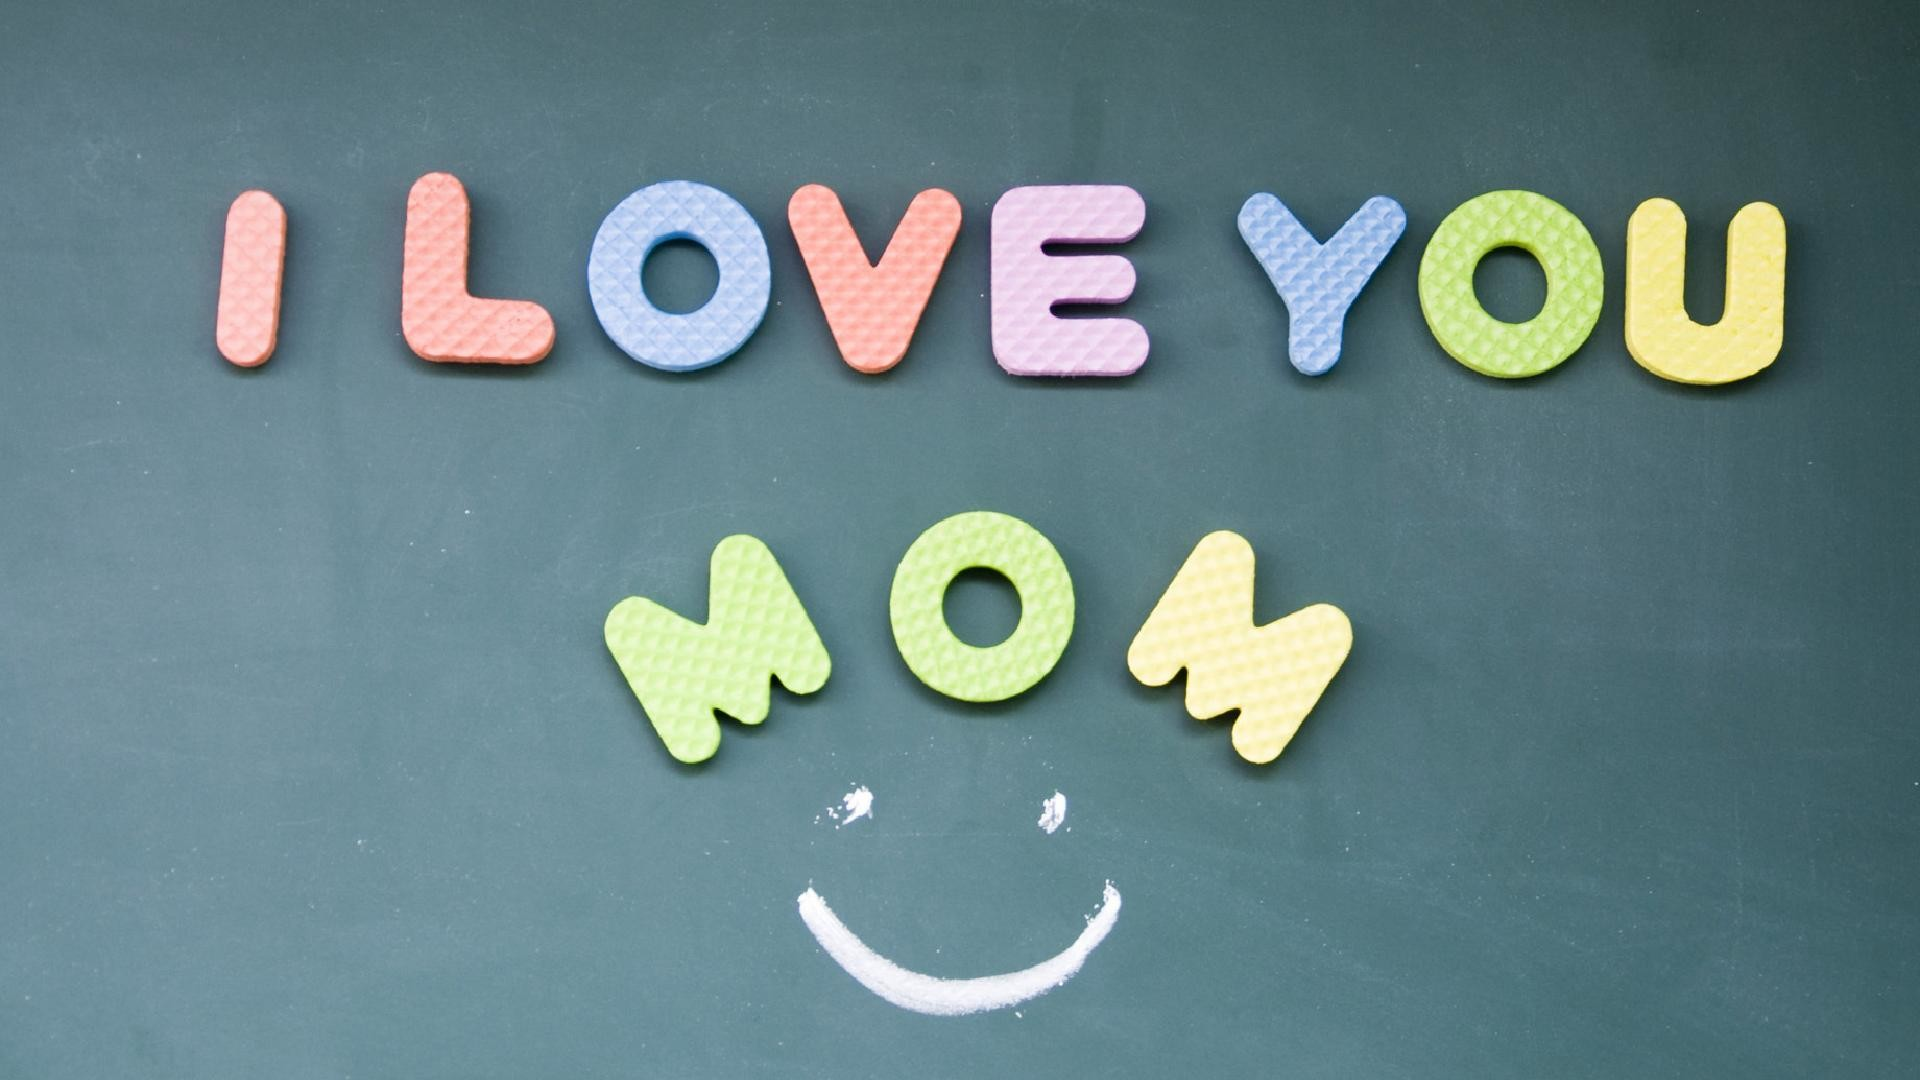 I Love You Mom Wallpaper 61 Images